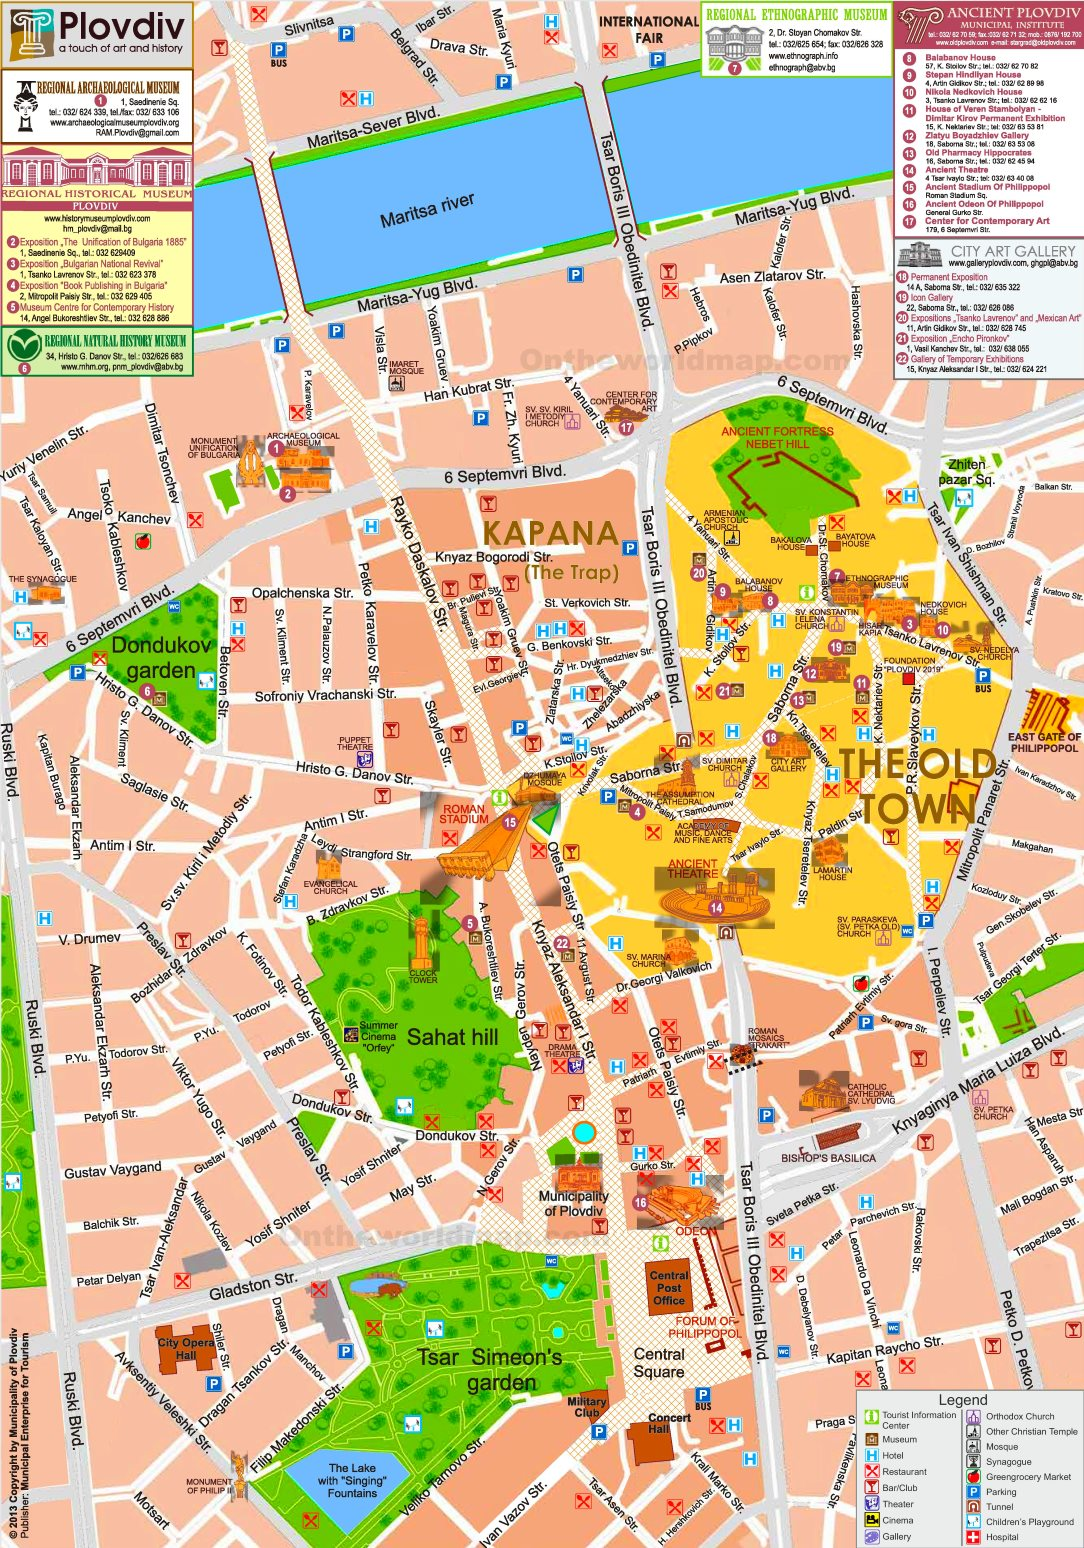 Plovdiv Hotels And Sightseeings Map